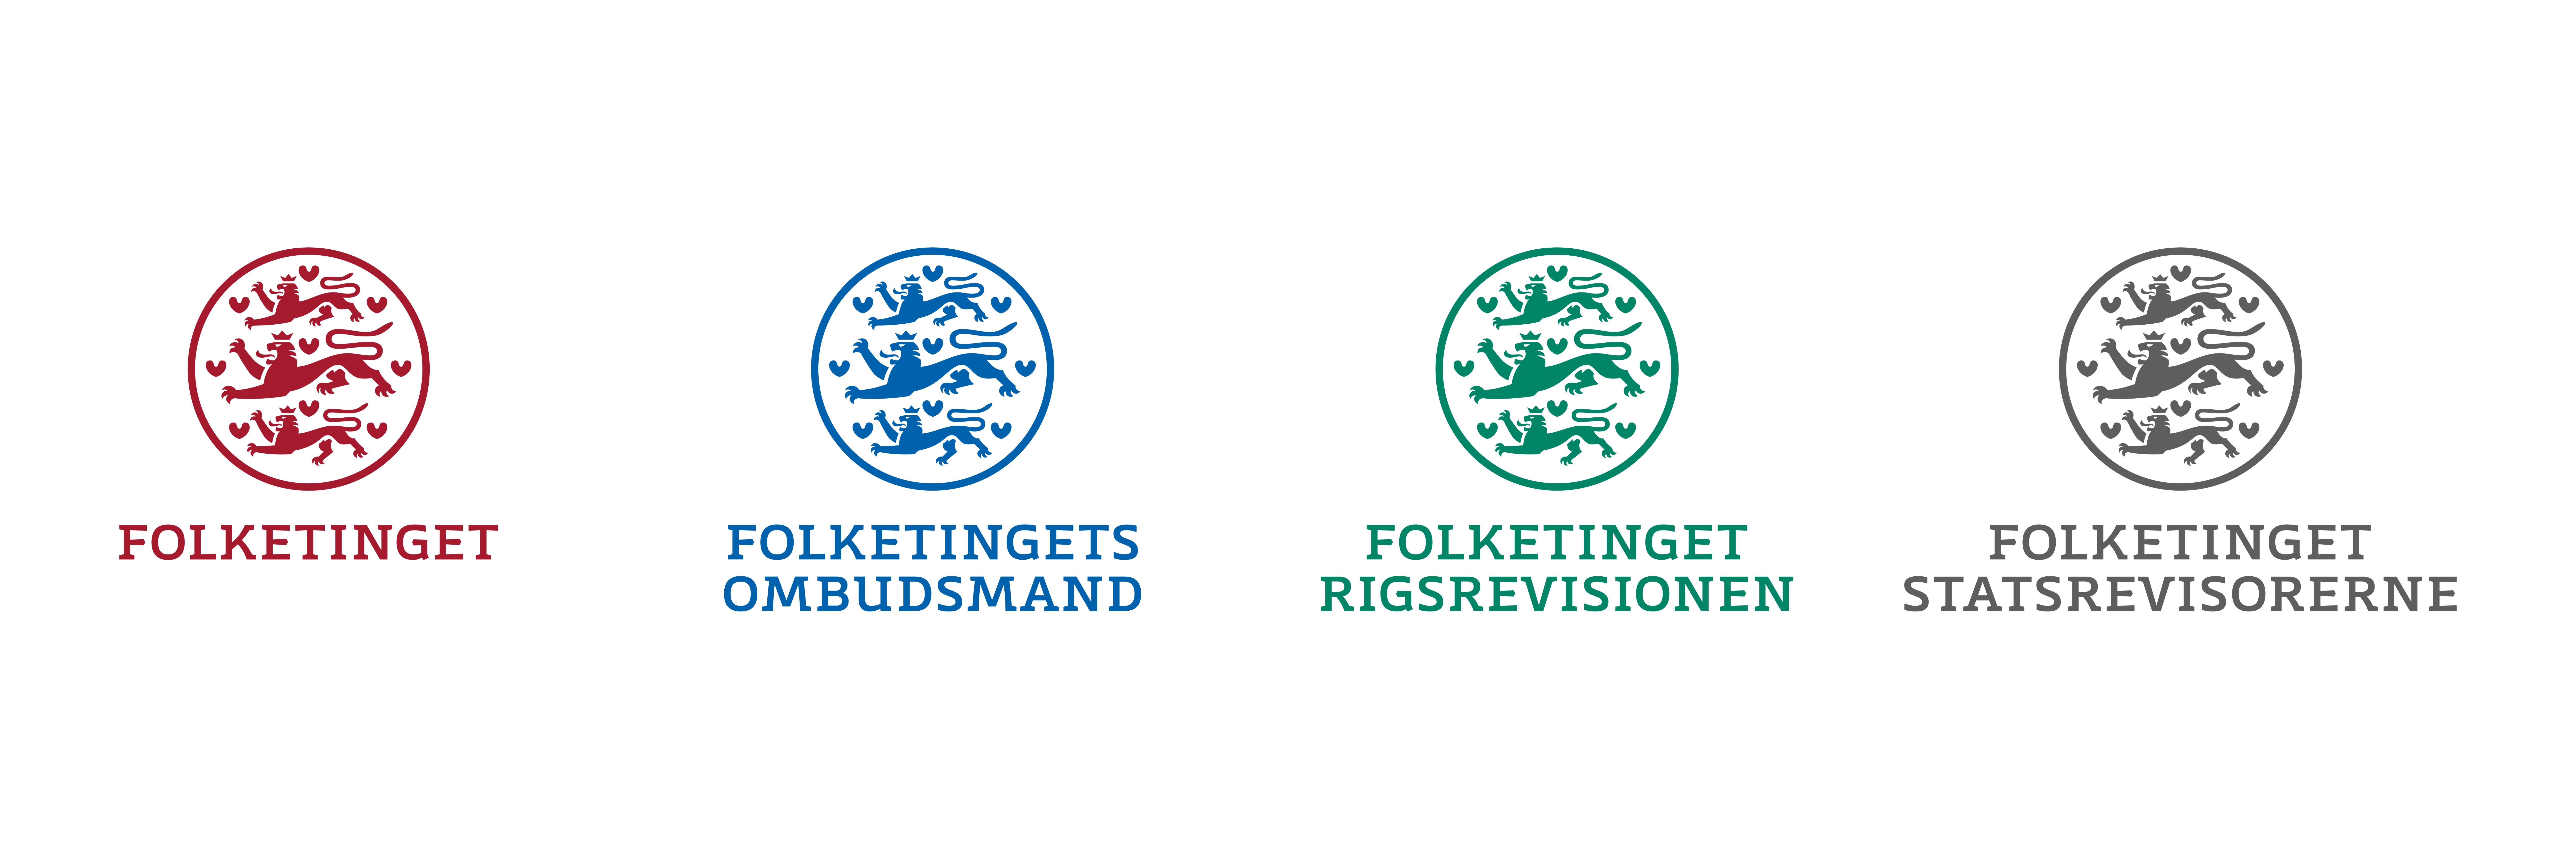 Four logos for folketinget in red blue green and grey